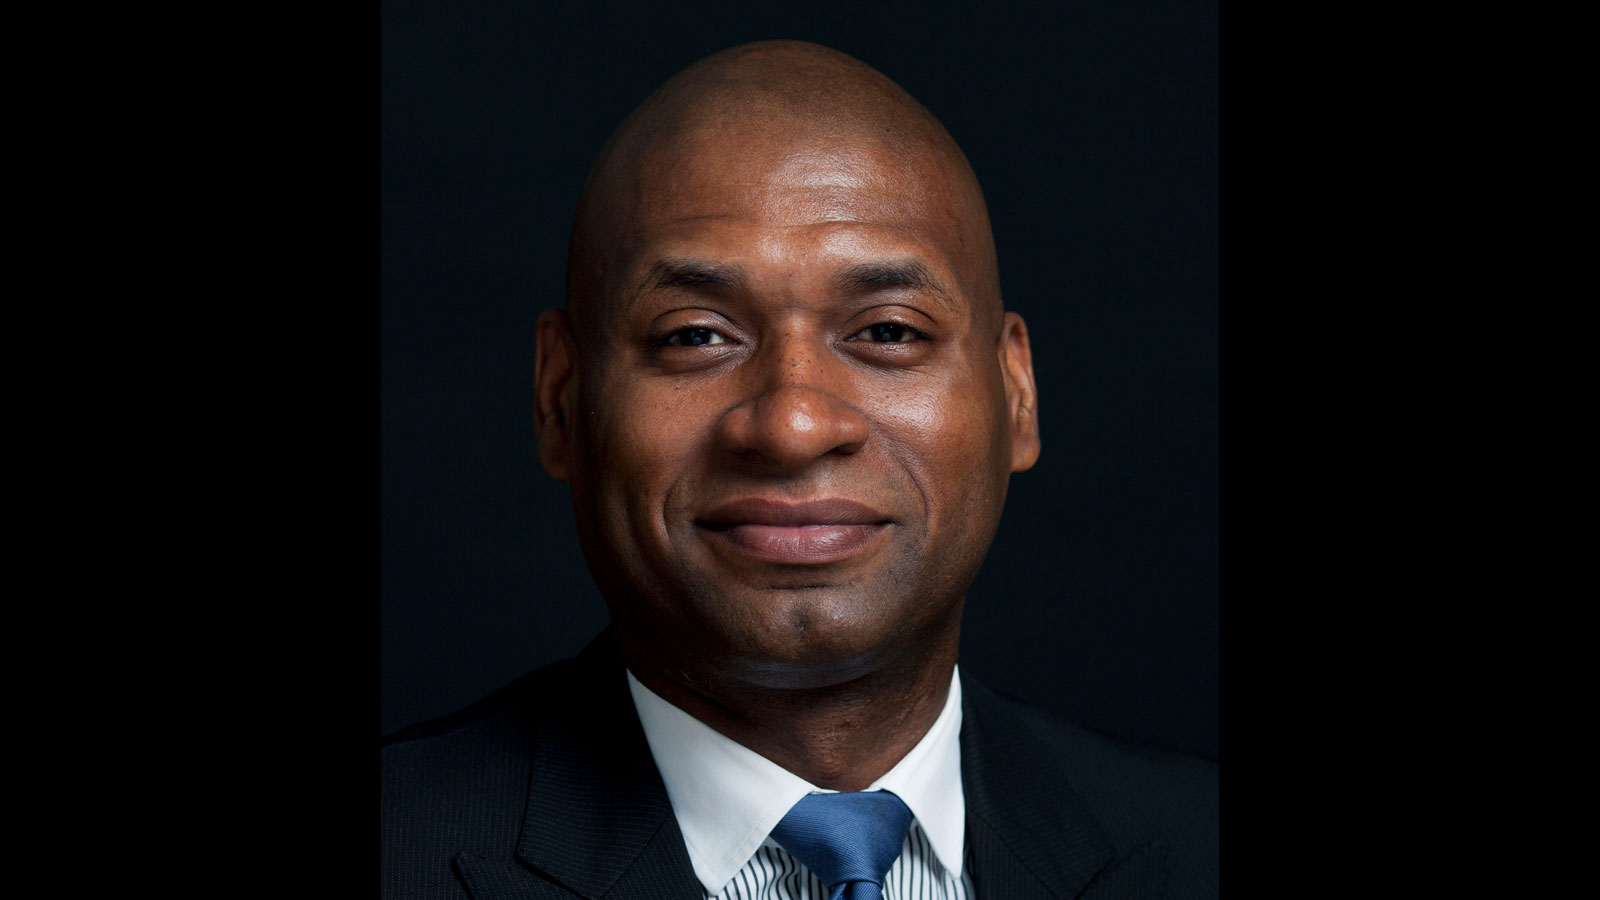 Acclaimed Author and Columnist Charles Blow to Speak at HRC's Time to THRIVE Conference